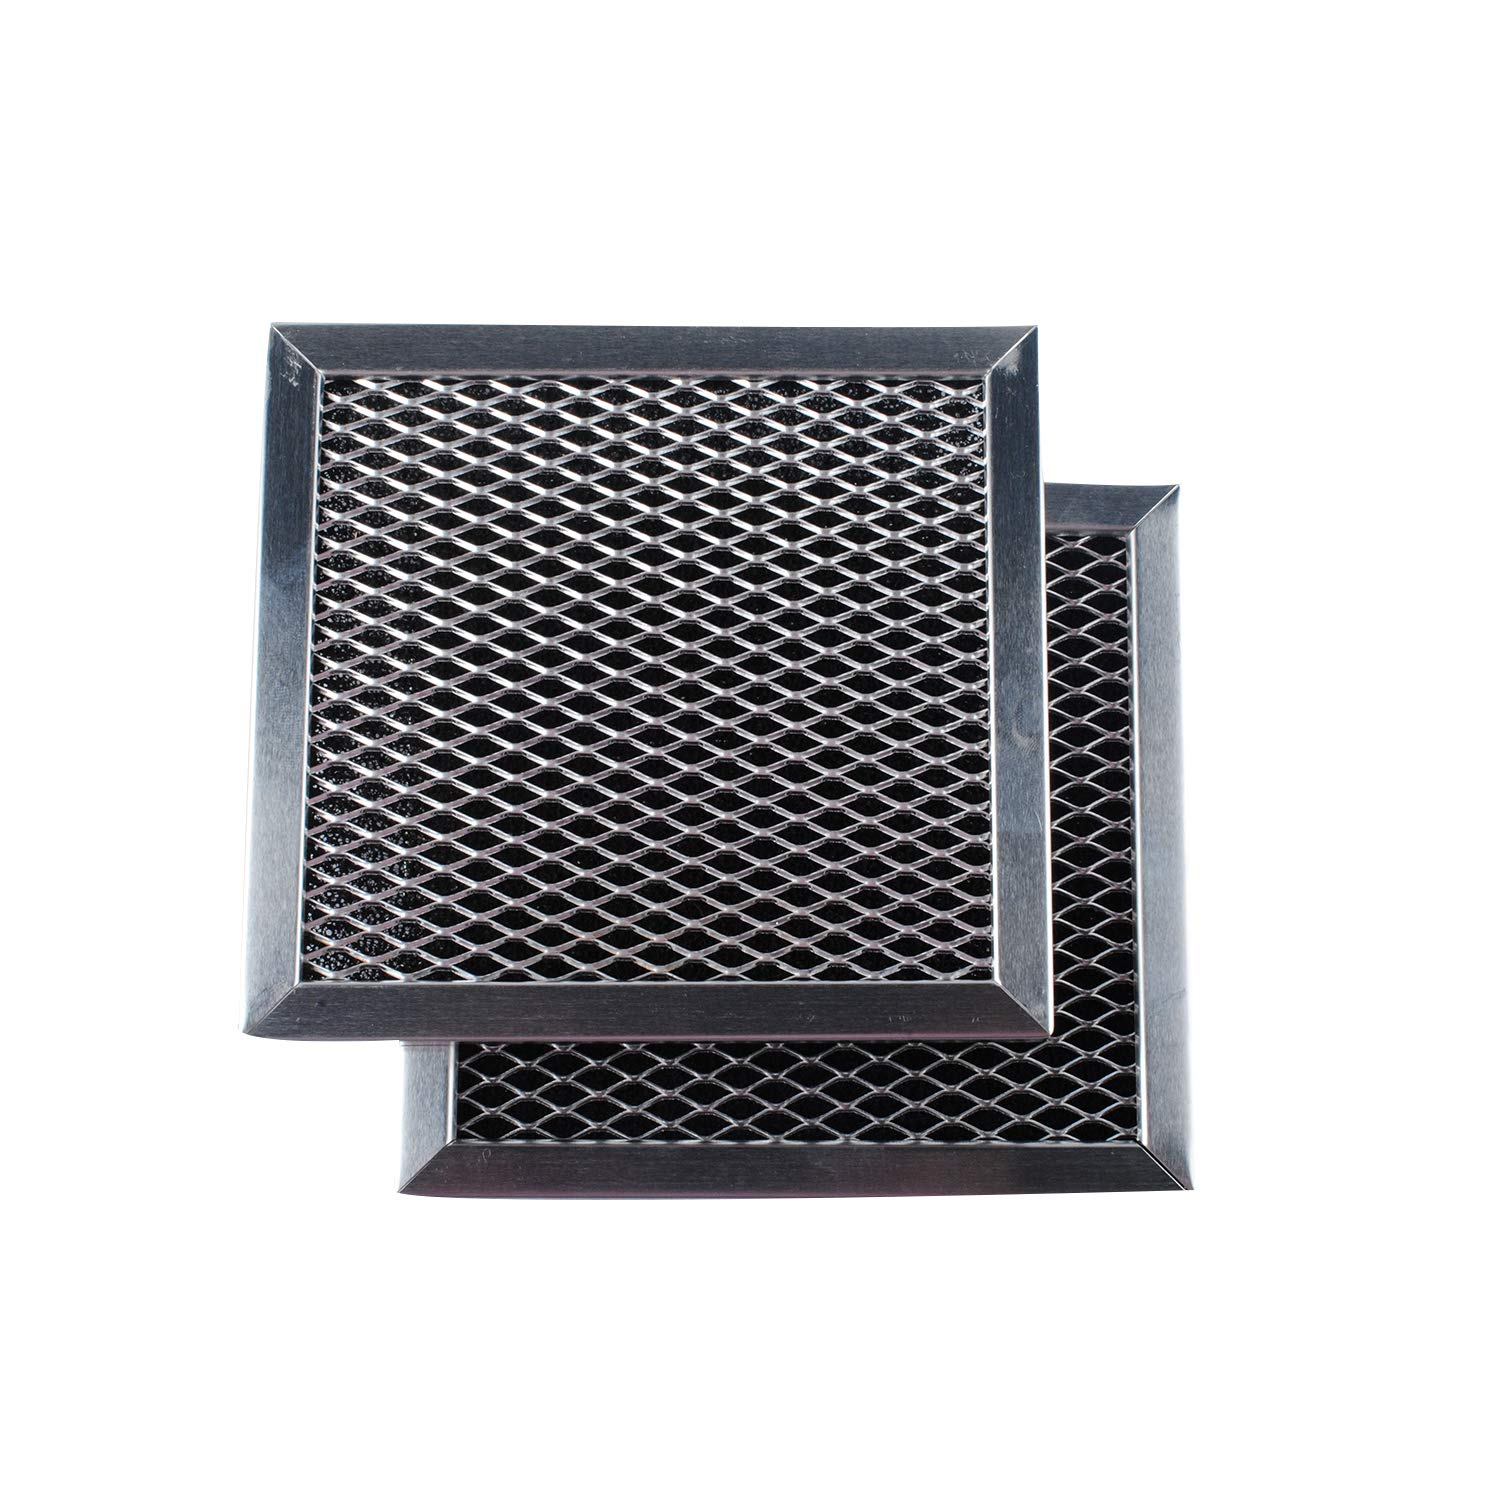 Podoy 8206230A Microwave Range Hood Charcoal Filters Compatible with Whirlpool Sears AP4299744 PS1871363 (2-Pack)